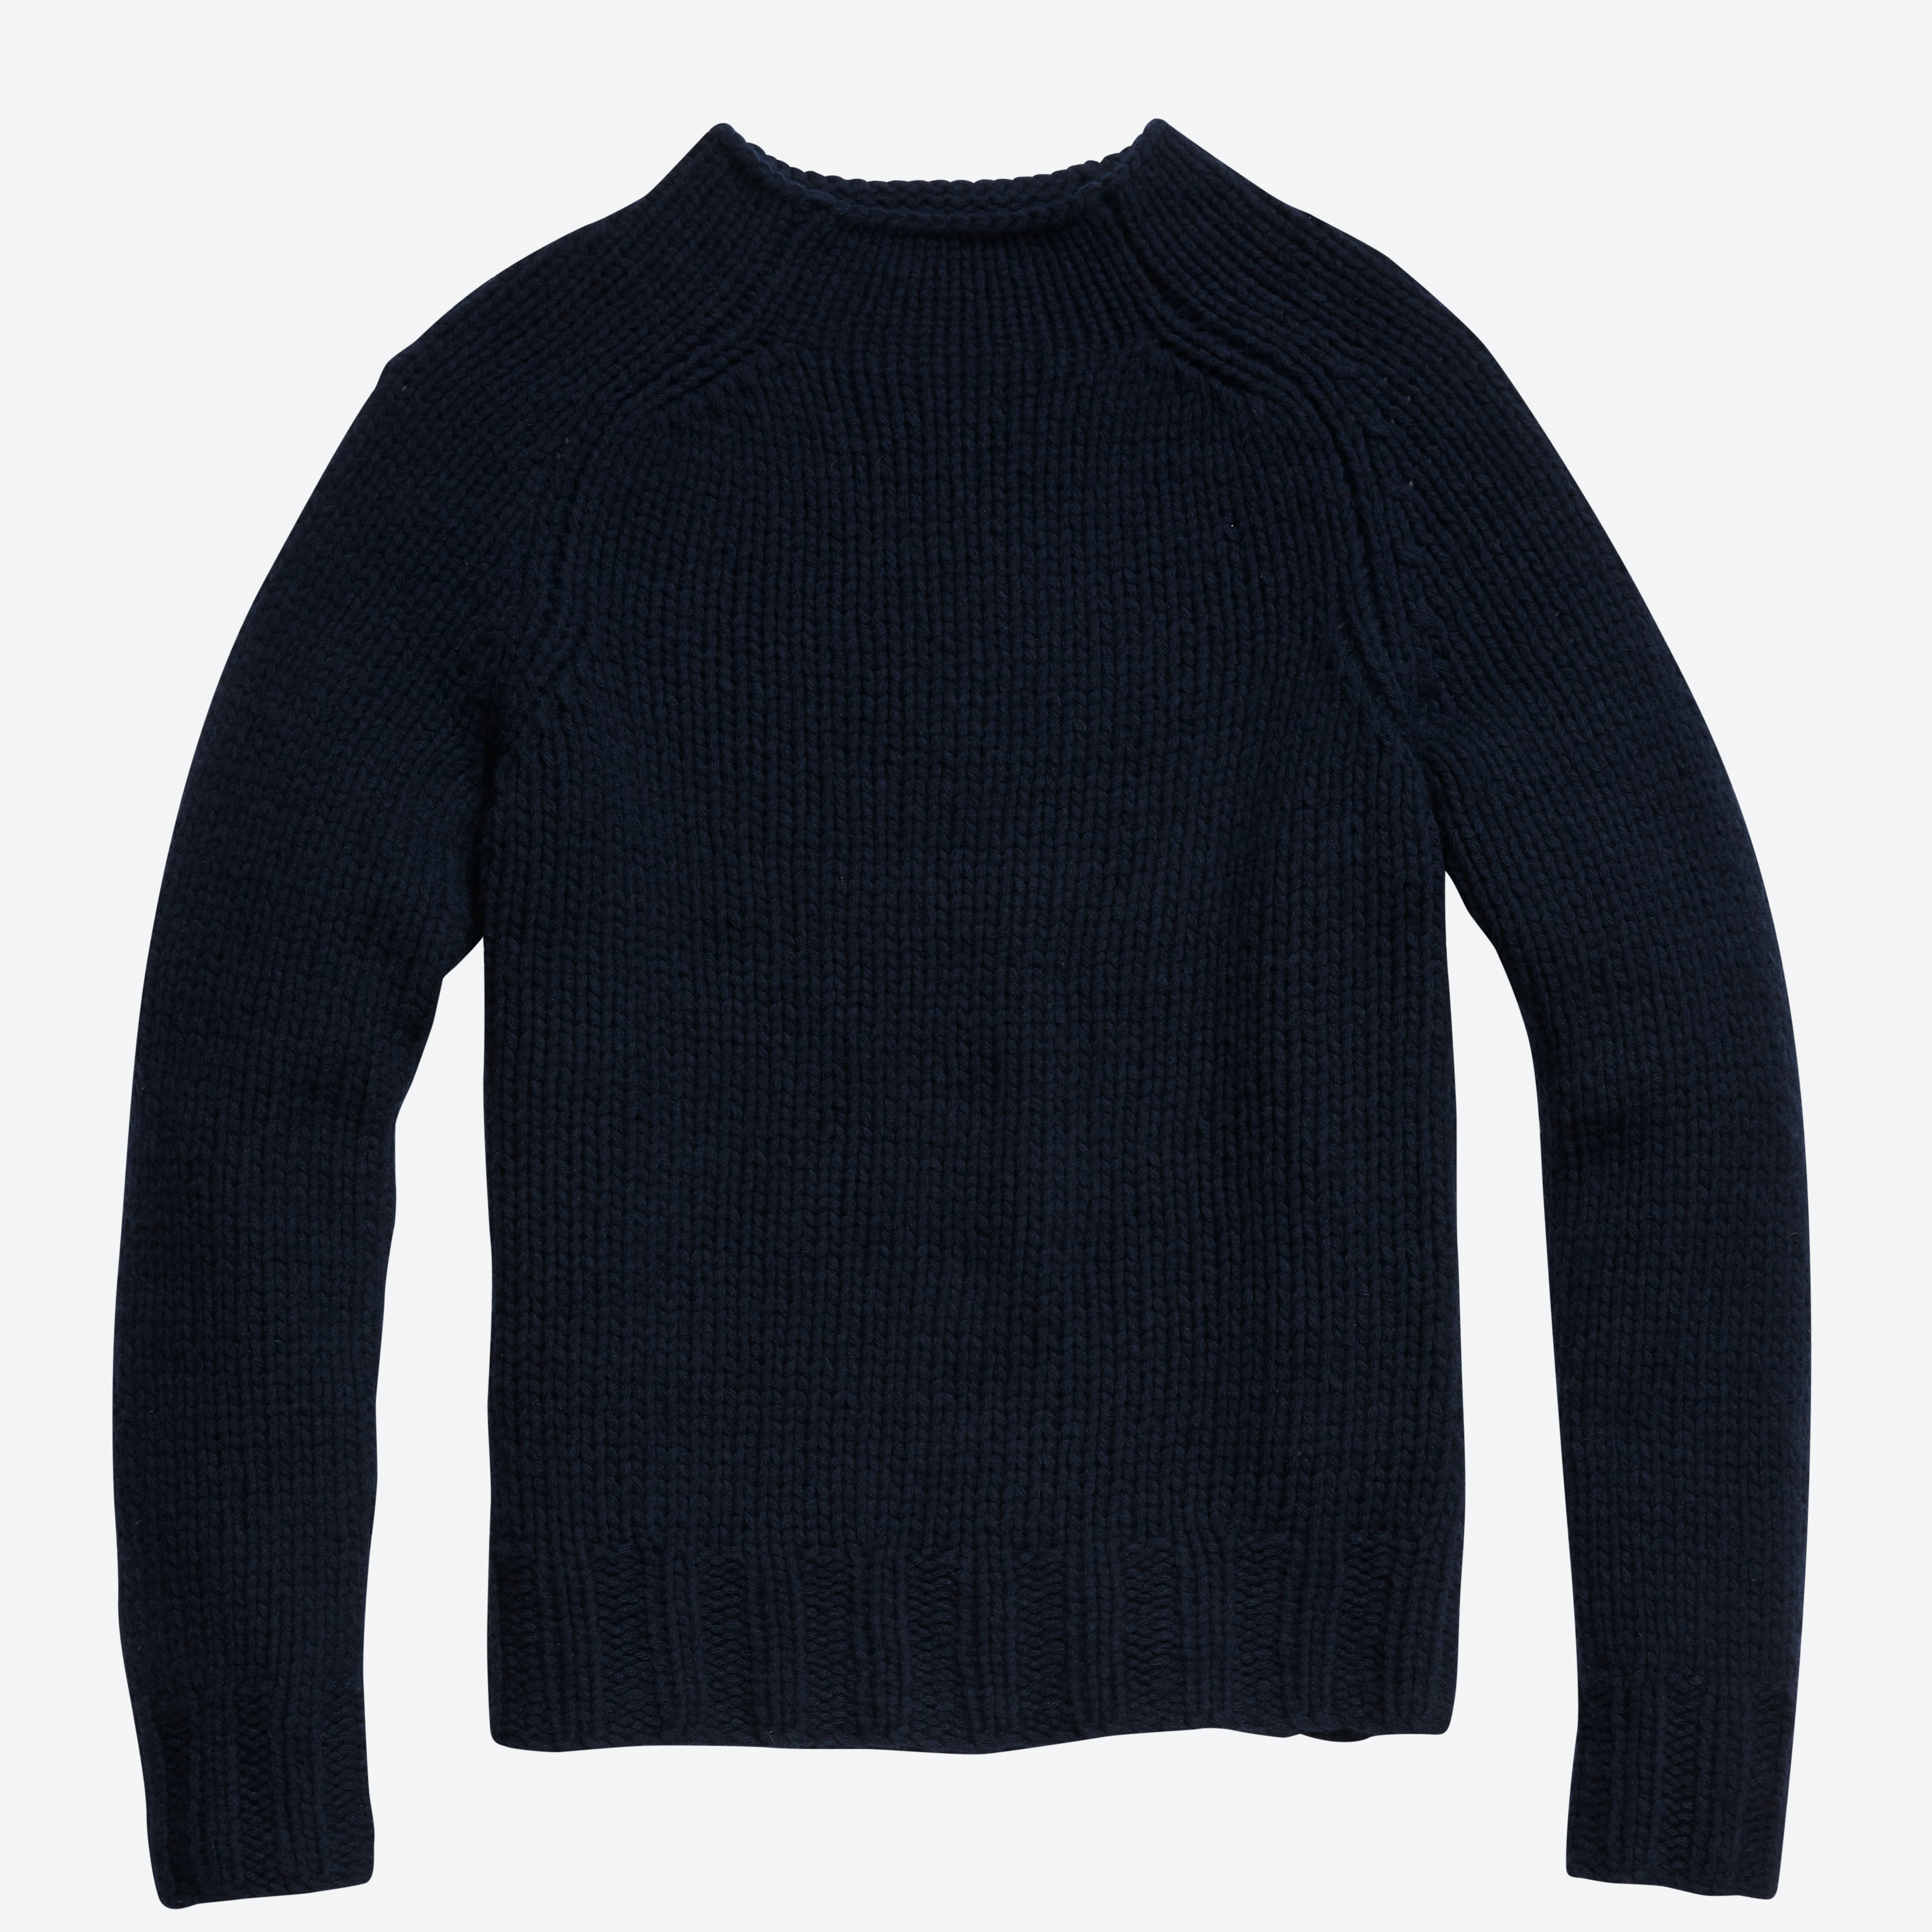 Handknit Mock Neck Sweater